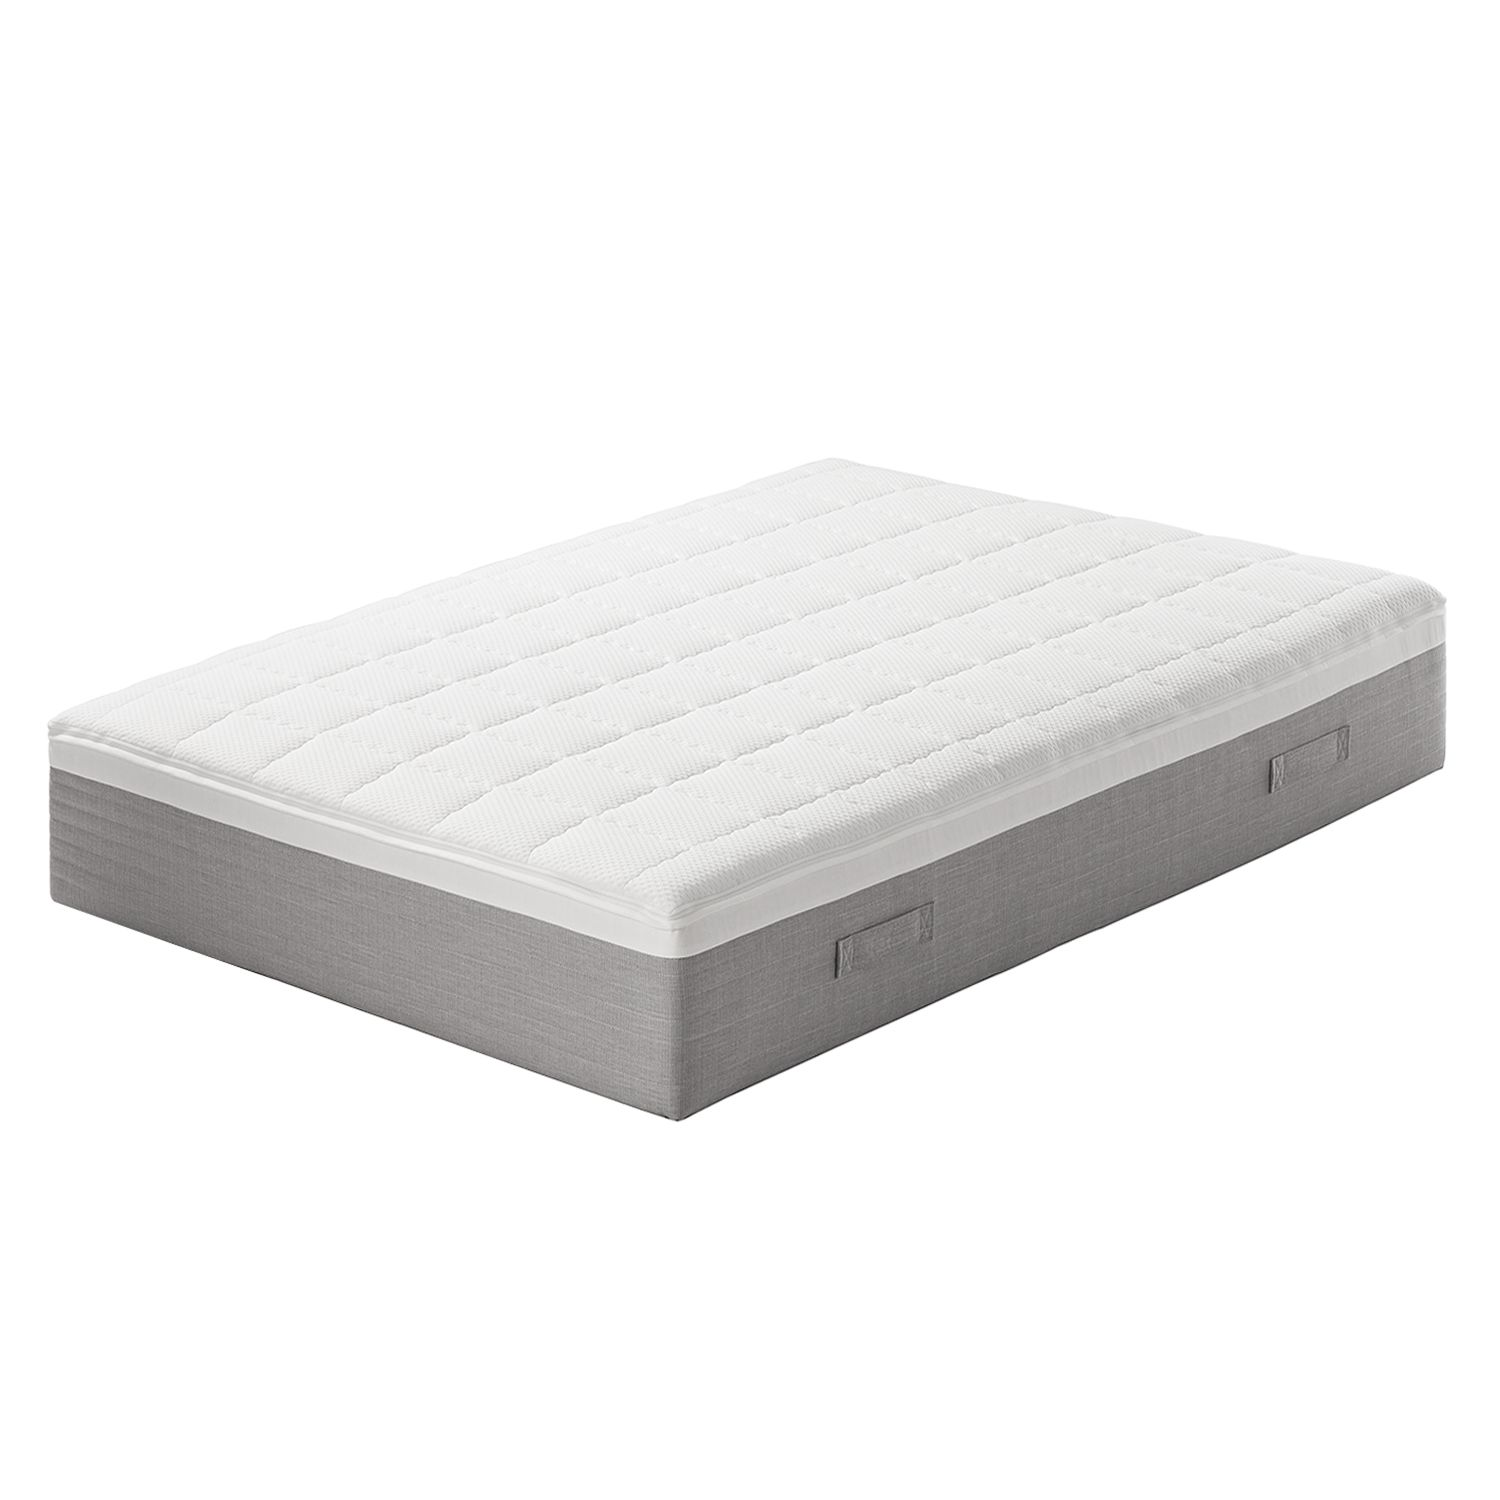 Matelas boxspring Smood Select - 140 x 200cm, Smood